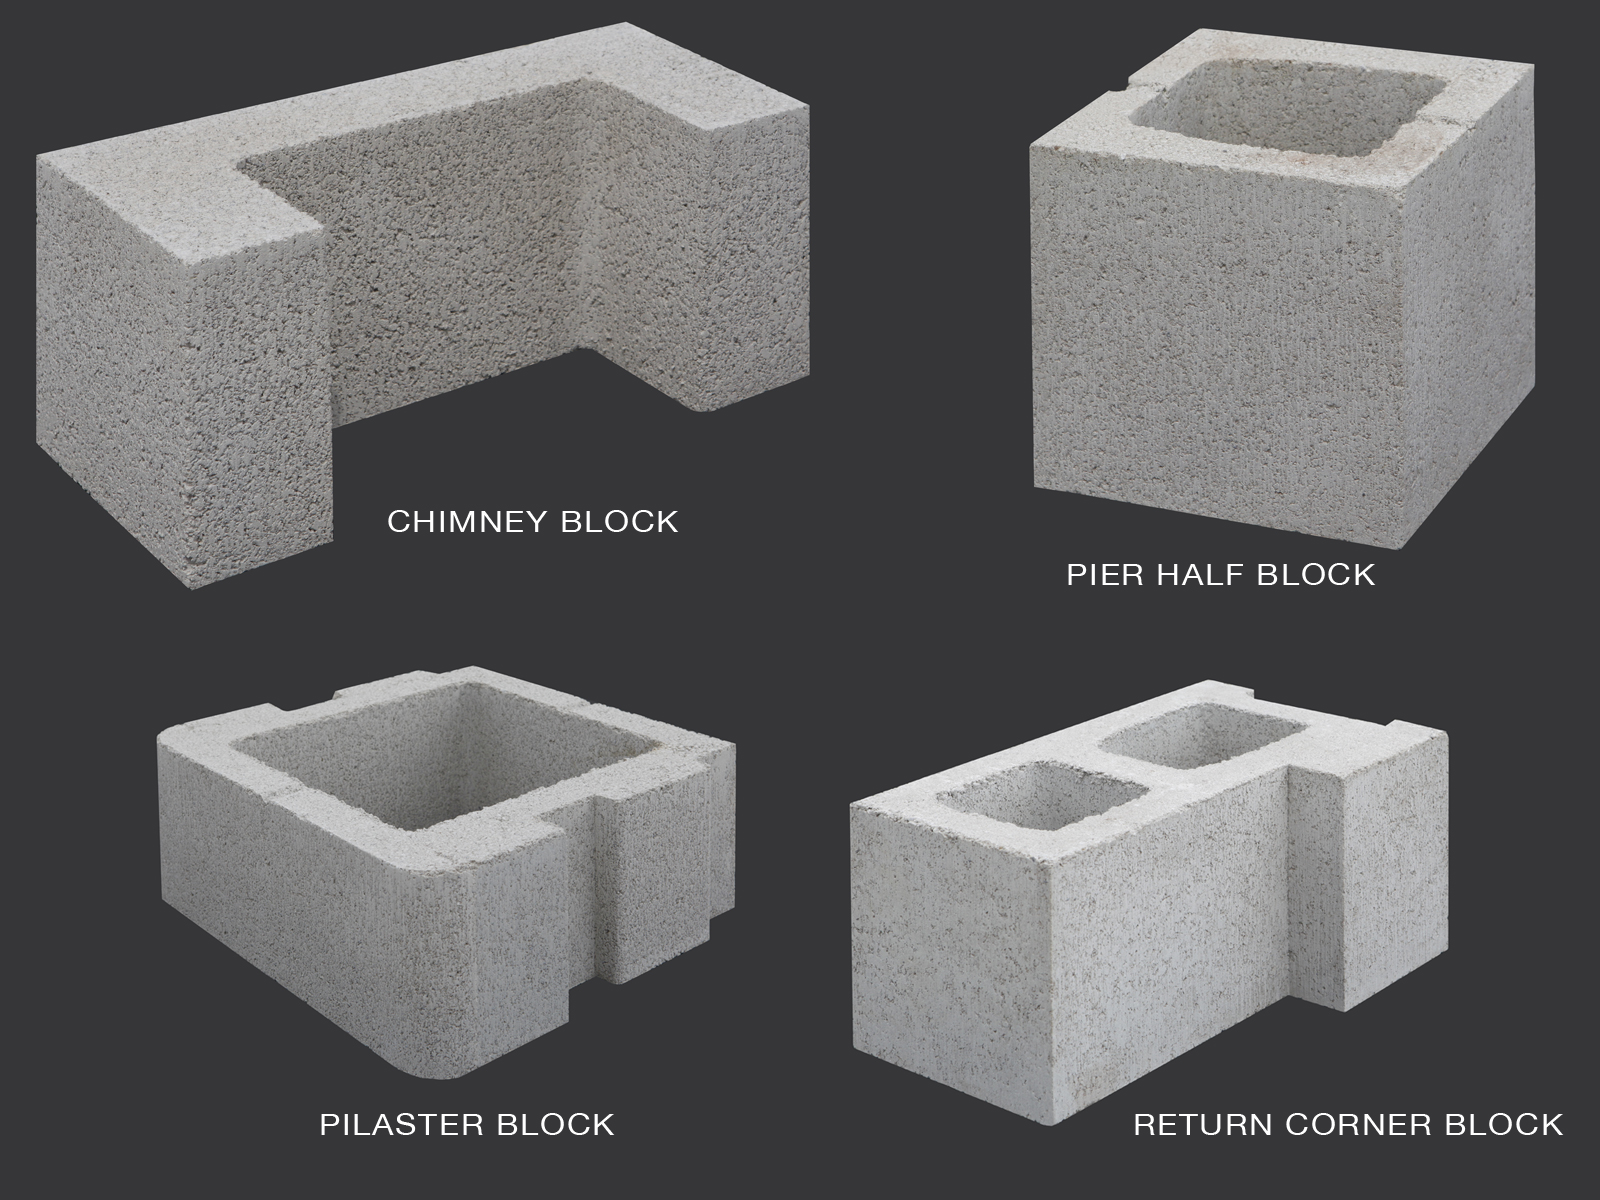 404 page not found for Styrofoam concrete blocks